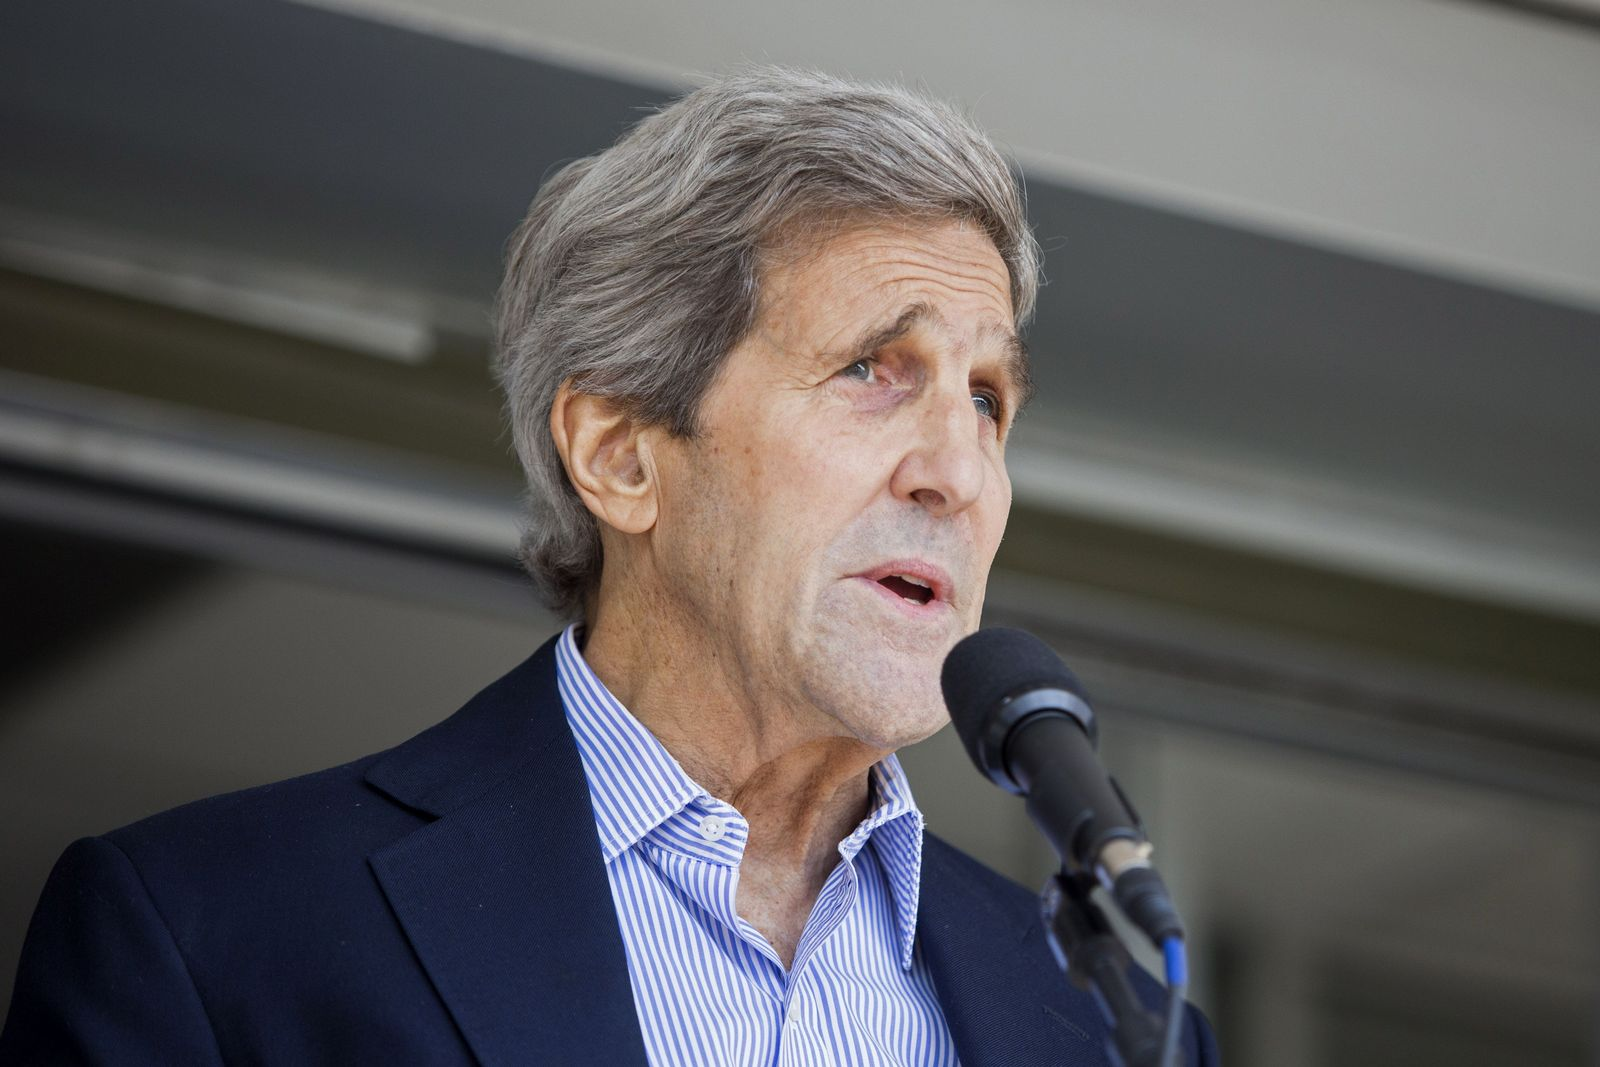 US-SECRETARY-OF-STATE-JOHN-KERRY-SPEAKS-TO-THE-PRESS-AFTER-DISCH